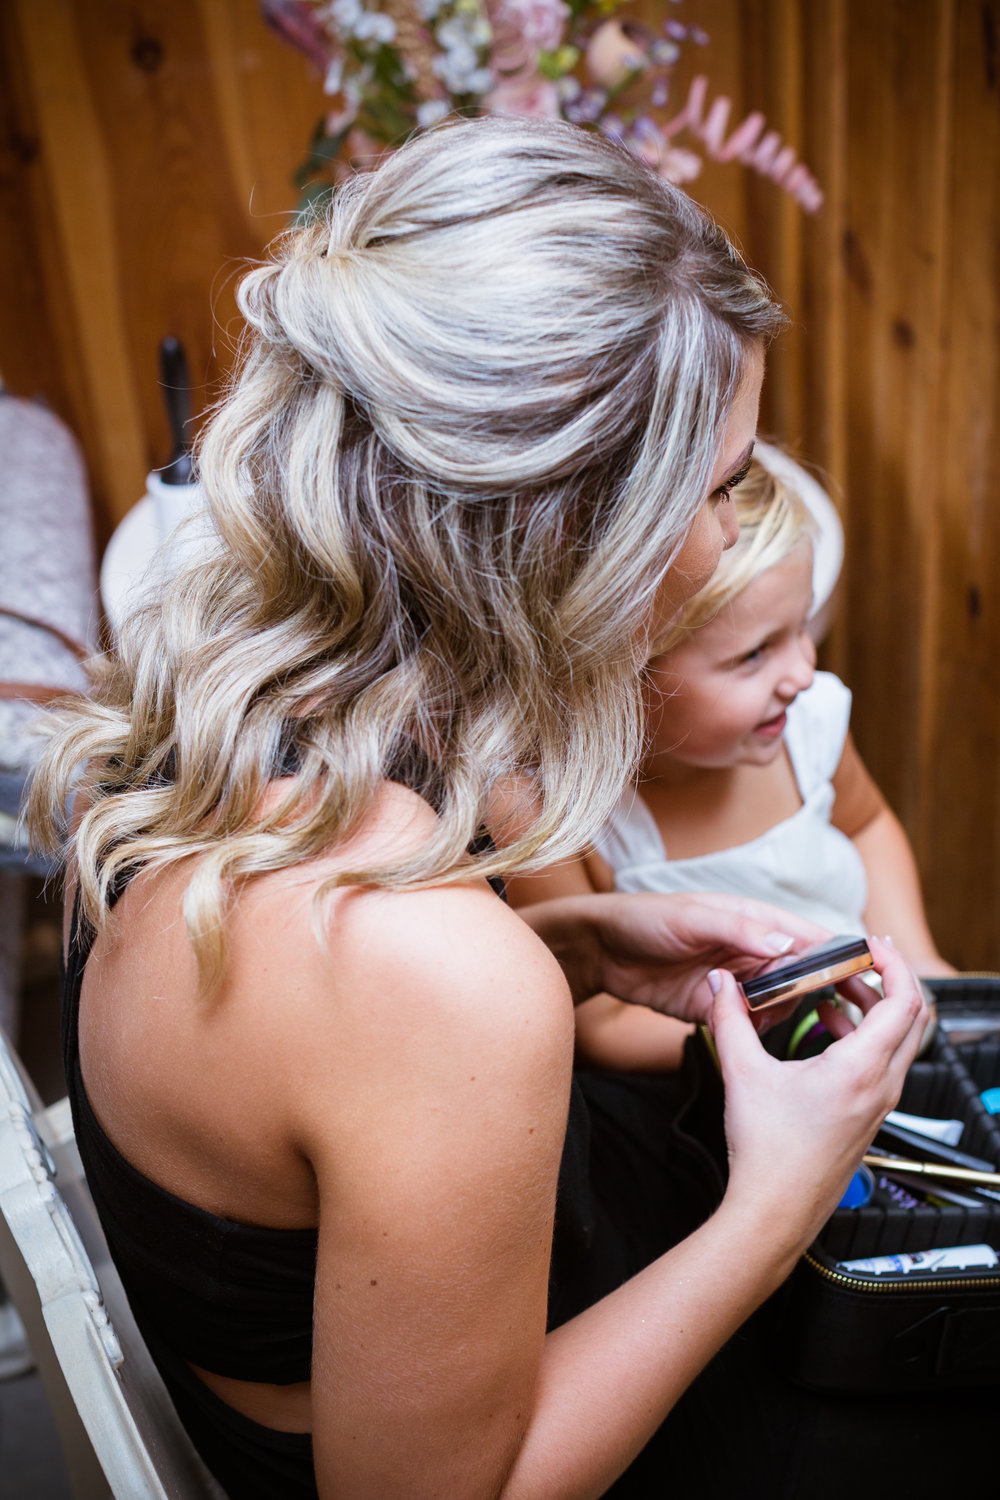 Kramer Wedding - Getting Ready-5.jpg